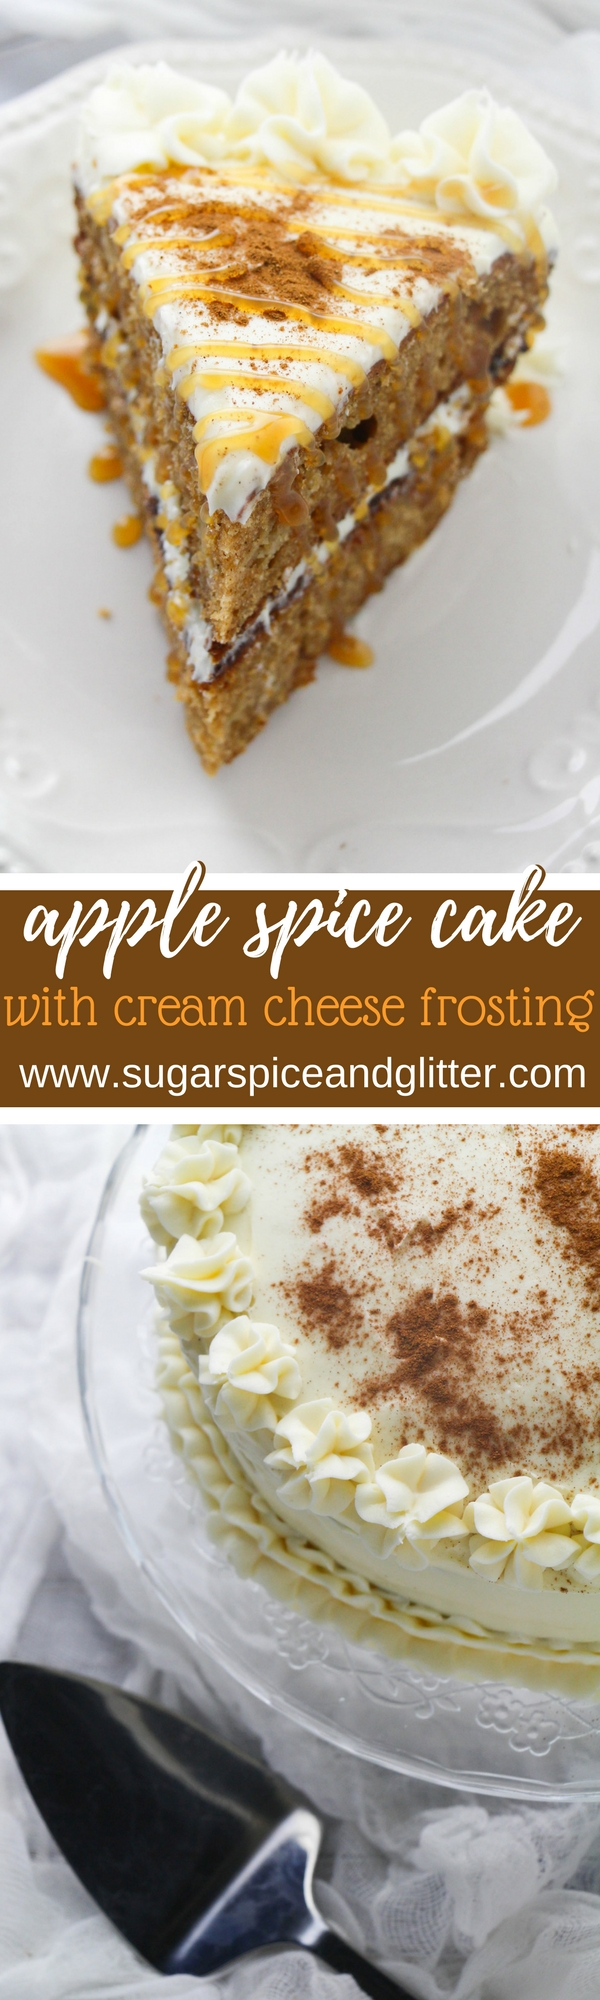 Apple Spice Layer Cake with Cream Cheese Frosting, a delicious fall dessert that will impress your guests and is super easy to make and decorate #apple #cake #falldessert